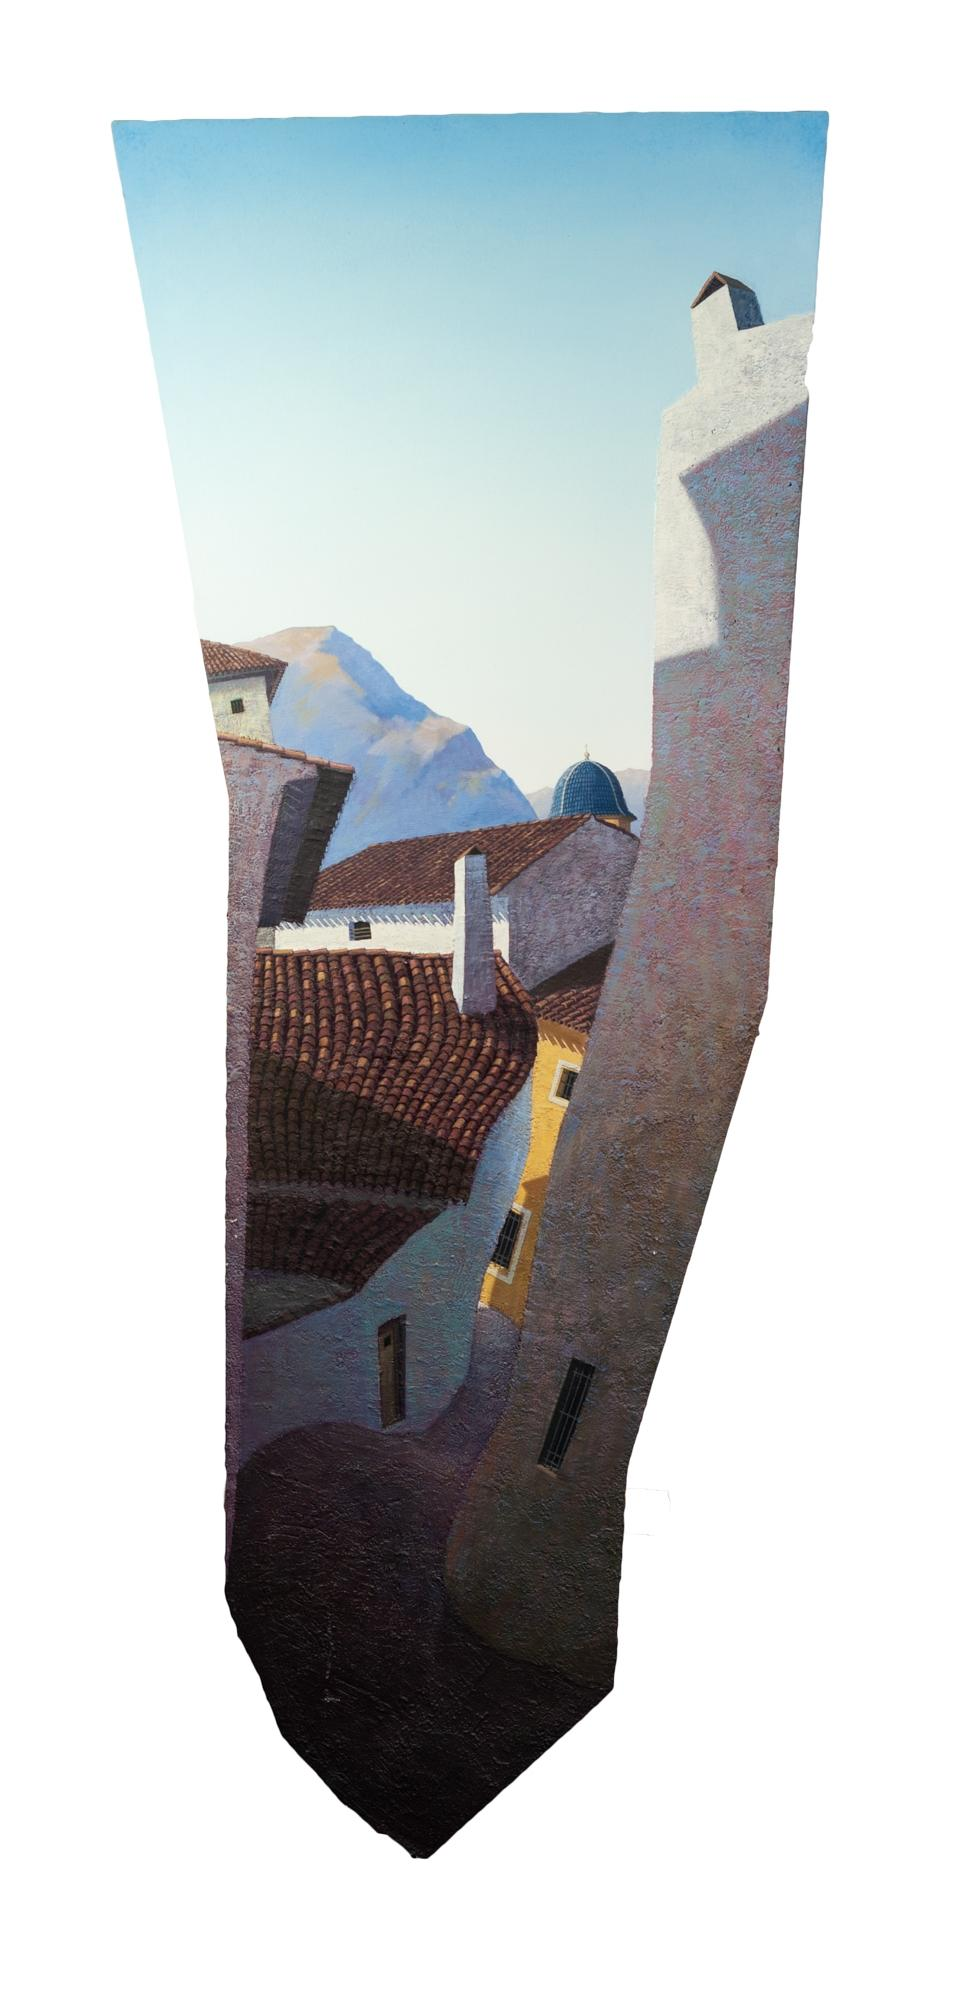 Lot 32 - PAUL CRITCHLEY (b.1960) OIL ON SHAPED BOARD ?Mountain Village? Signed and titled verso 70? x 28? (